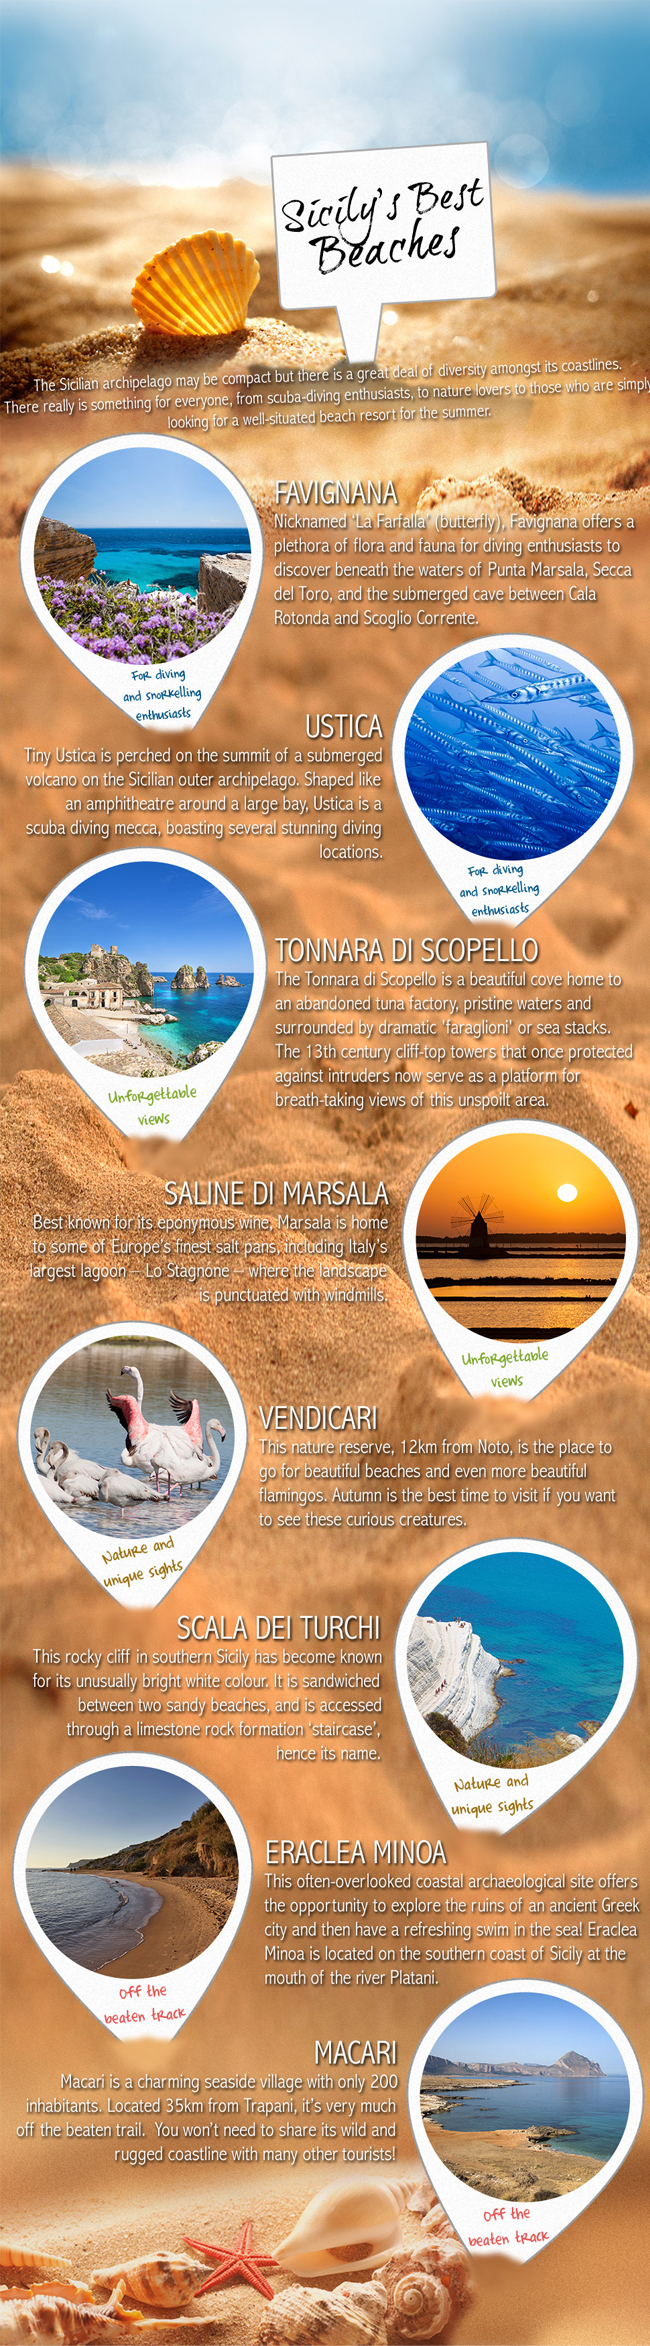 soloSicily-infographic